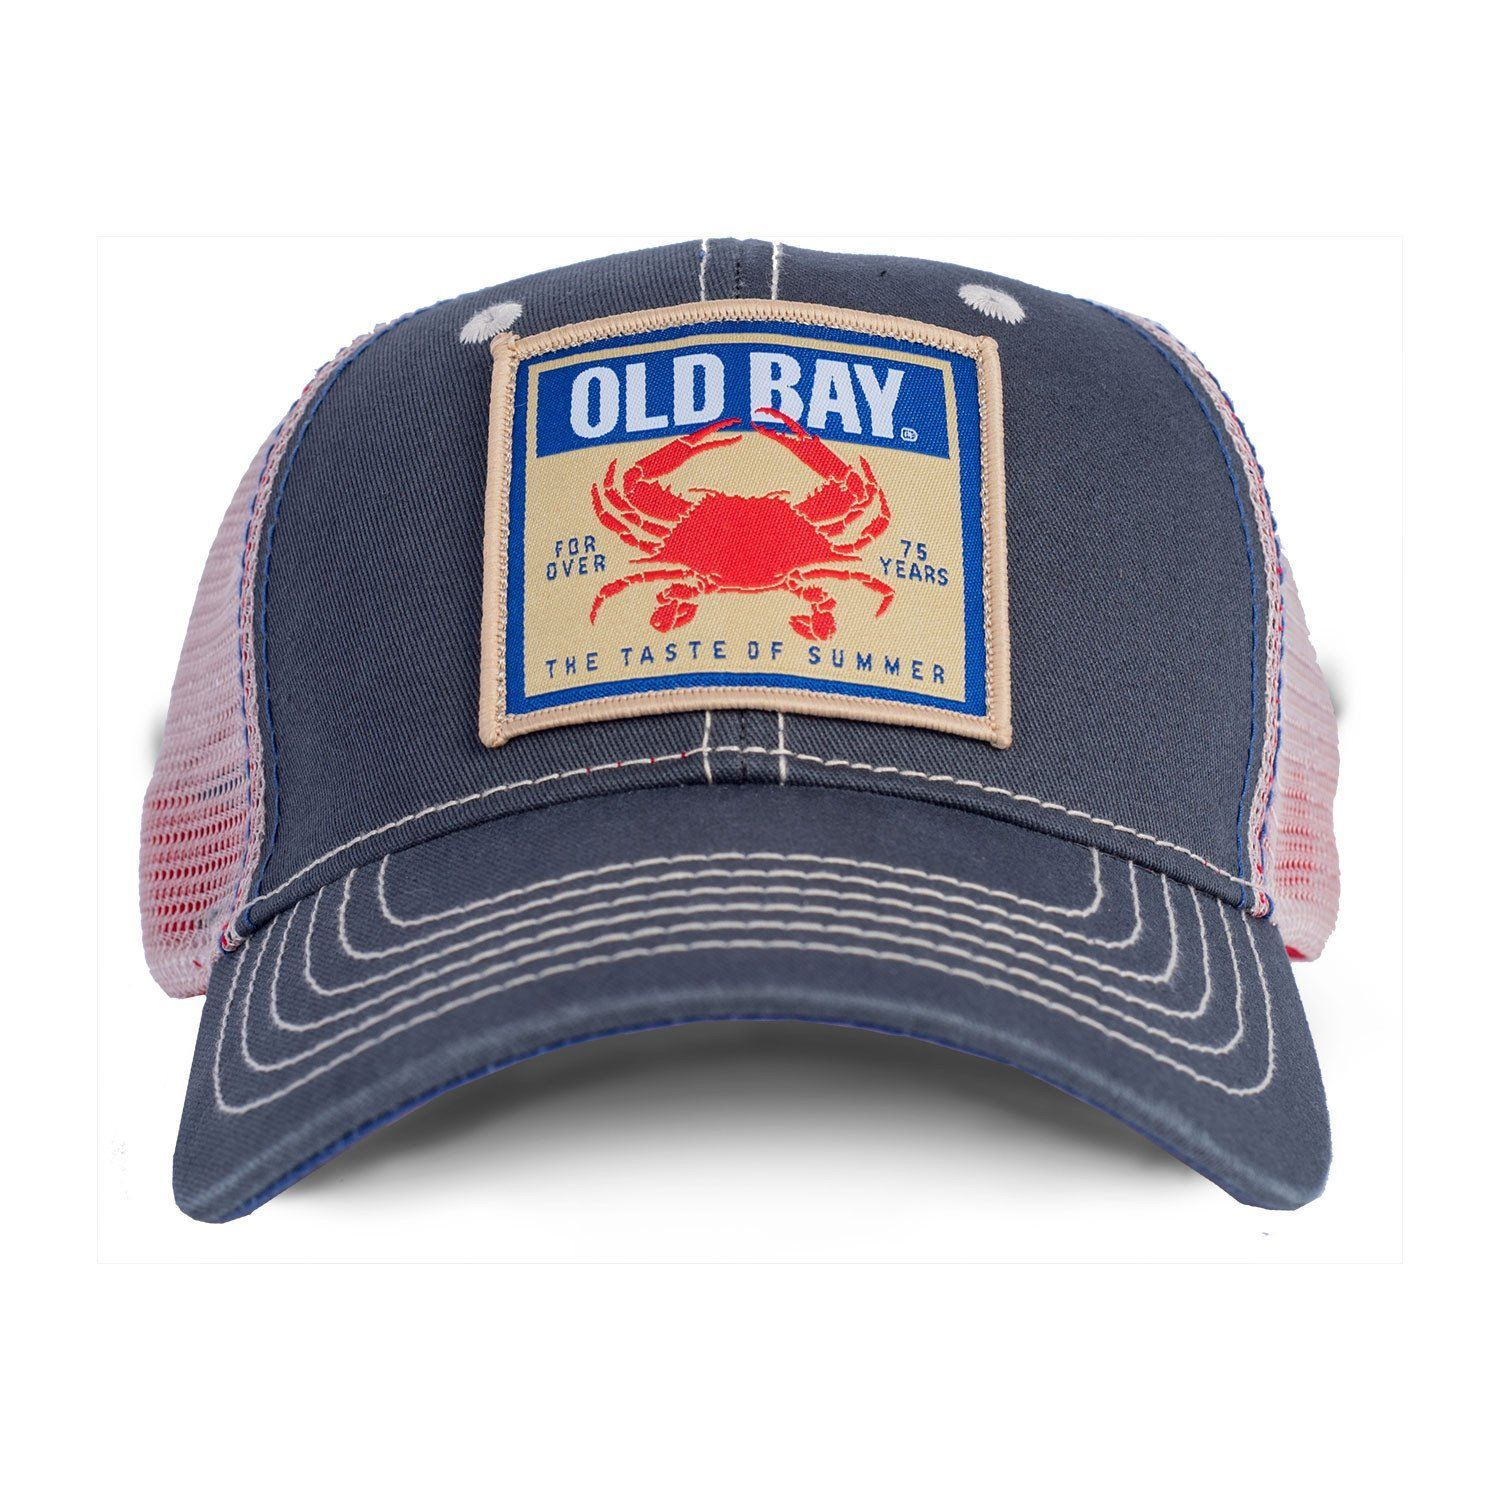 a37a18b4eac OLD BAY® Crab Patch Hat